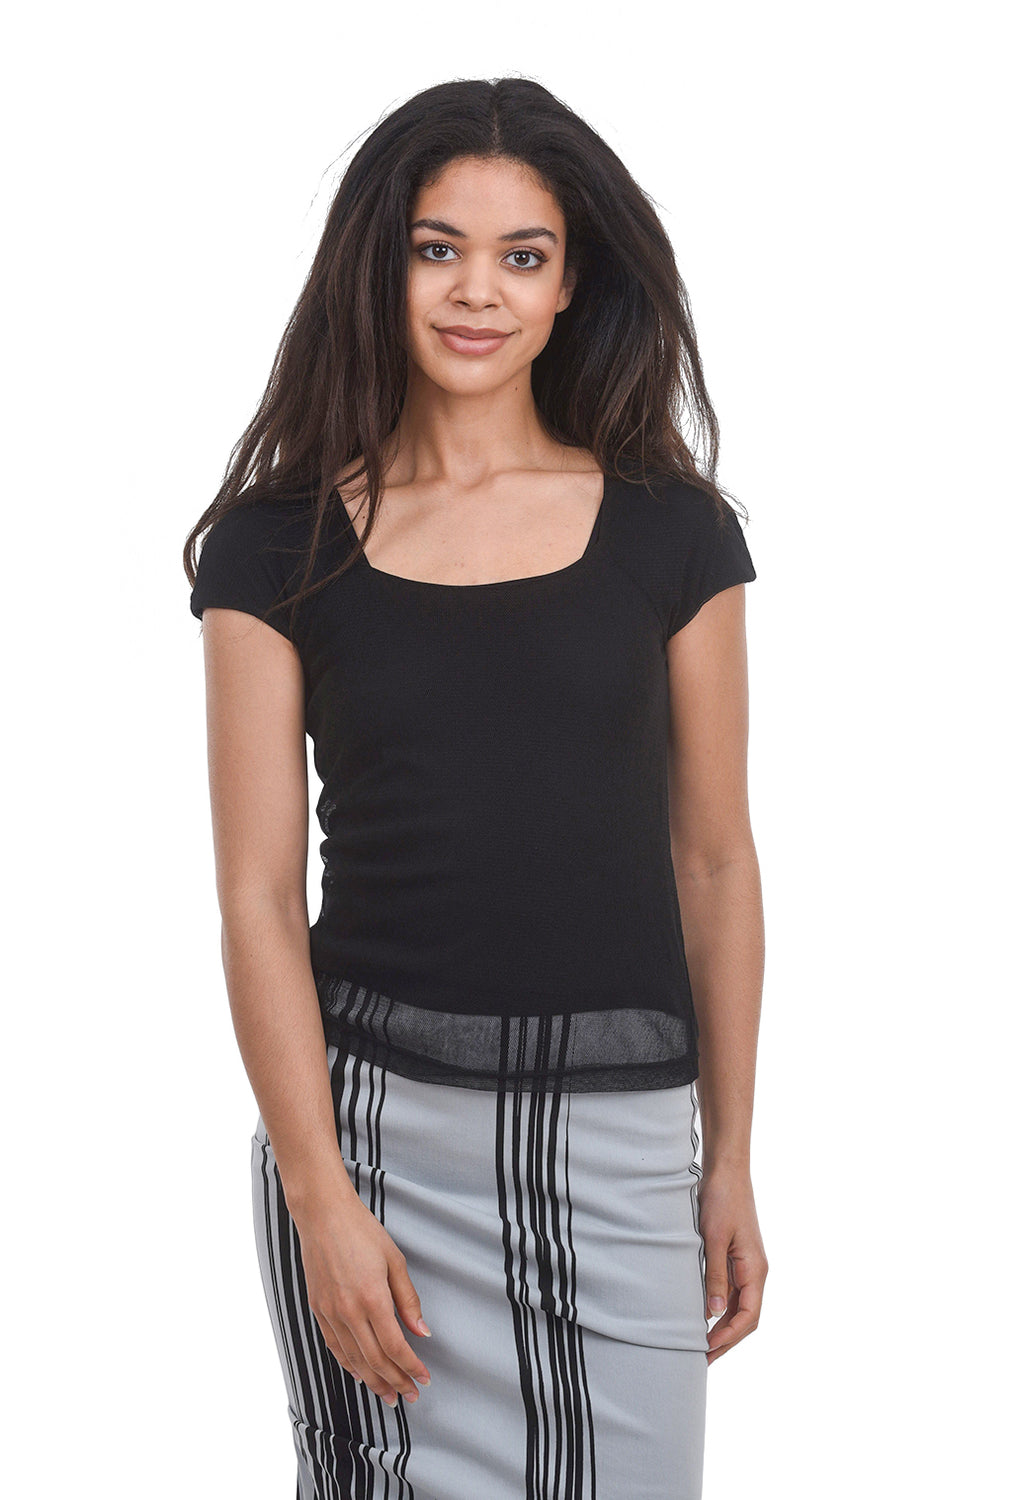 Porto Fanny Top, Black